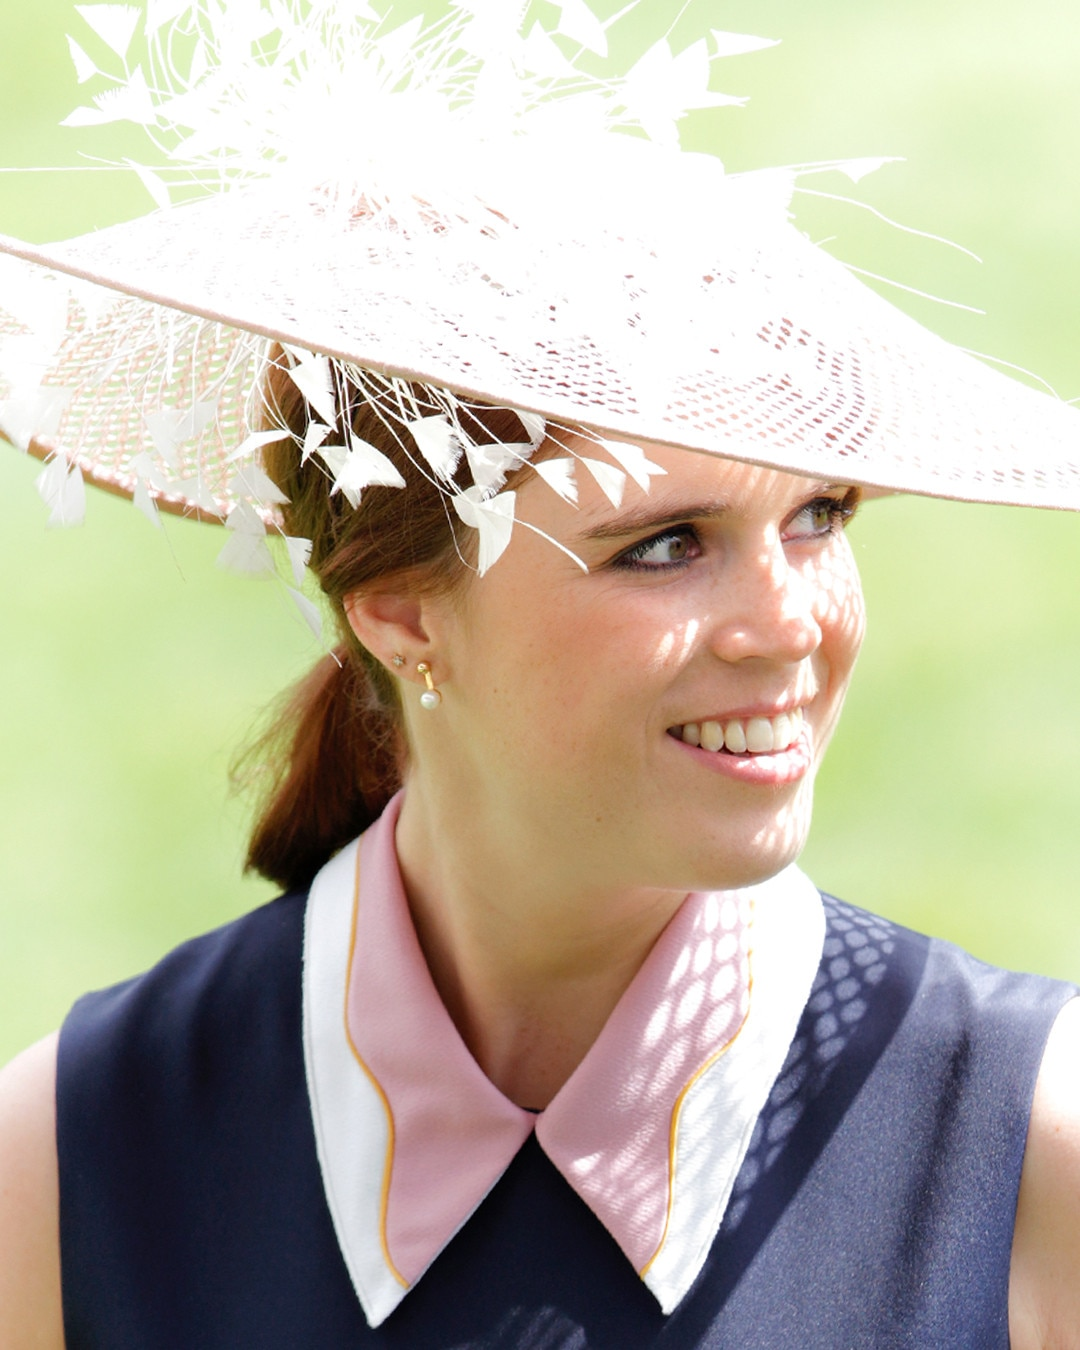 Princess Eugenie and Jack Brooksbank's wedding: How to watch in Canada